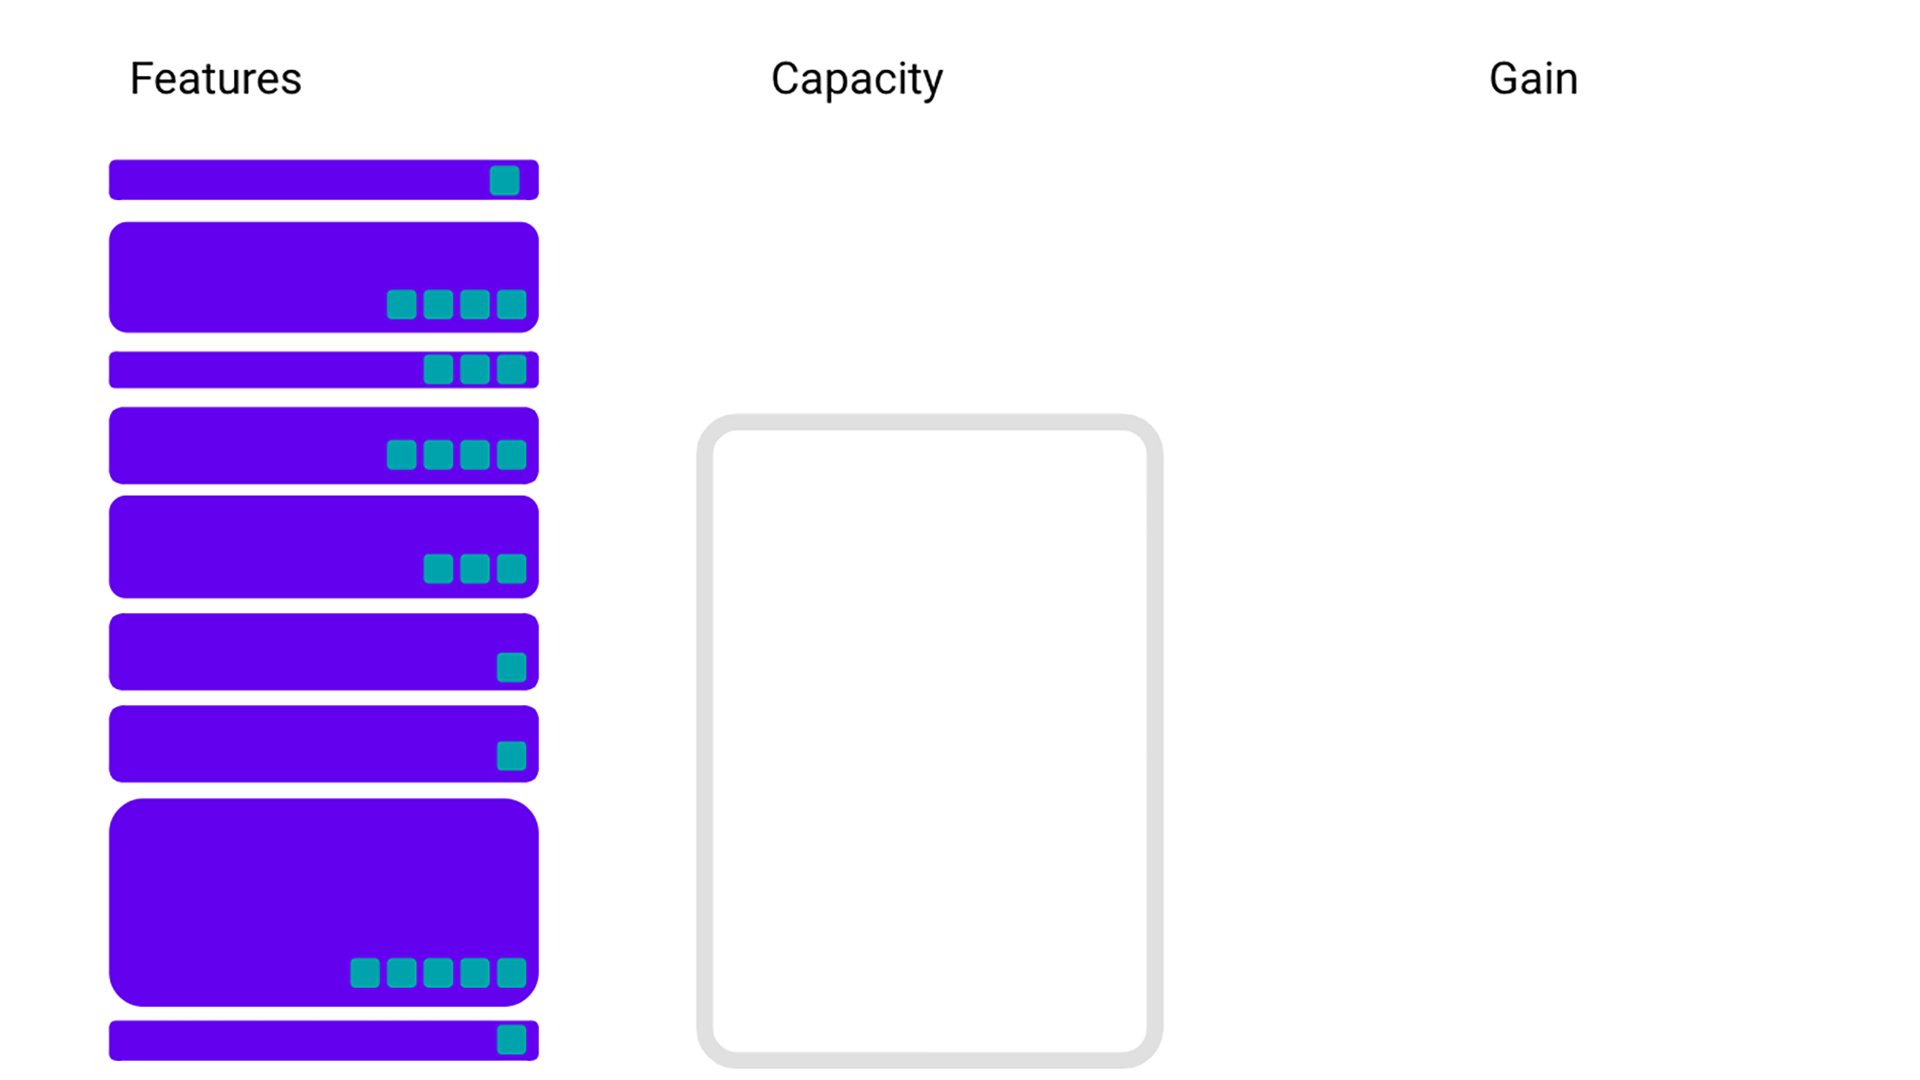 Say we have multiple features that all take up some amount of space (the height of the rectangles) and contribute some amount of gain to our models (the teal squares), and we are unable to accommodate them all in our limited capacity.